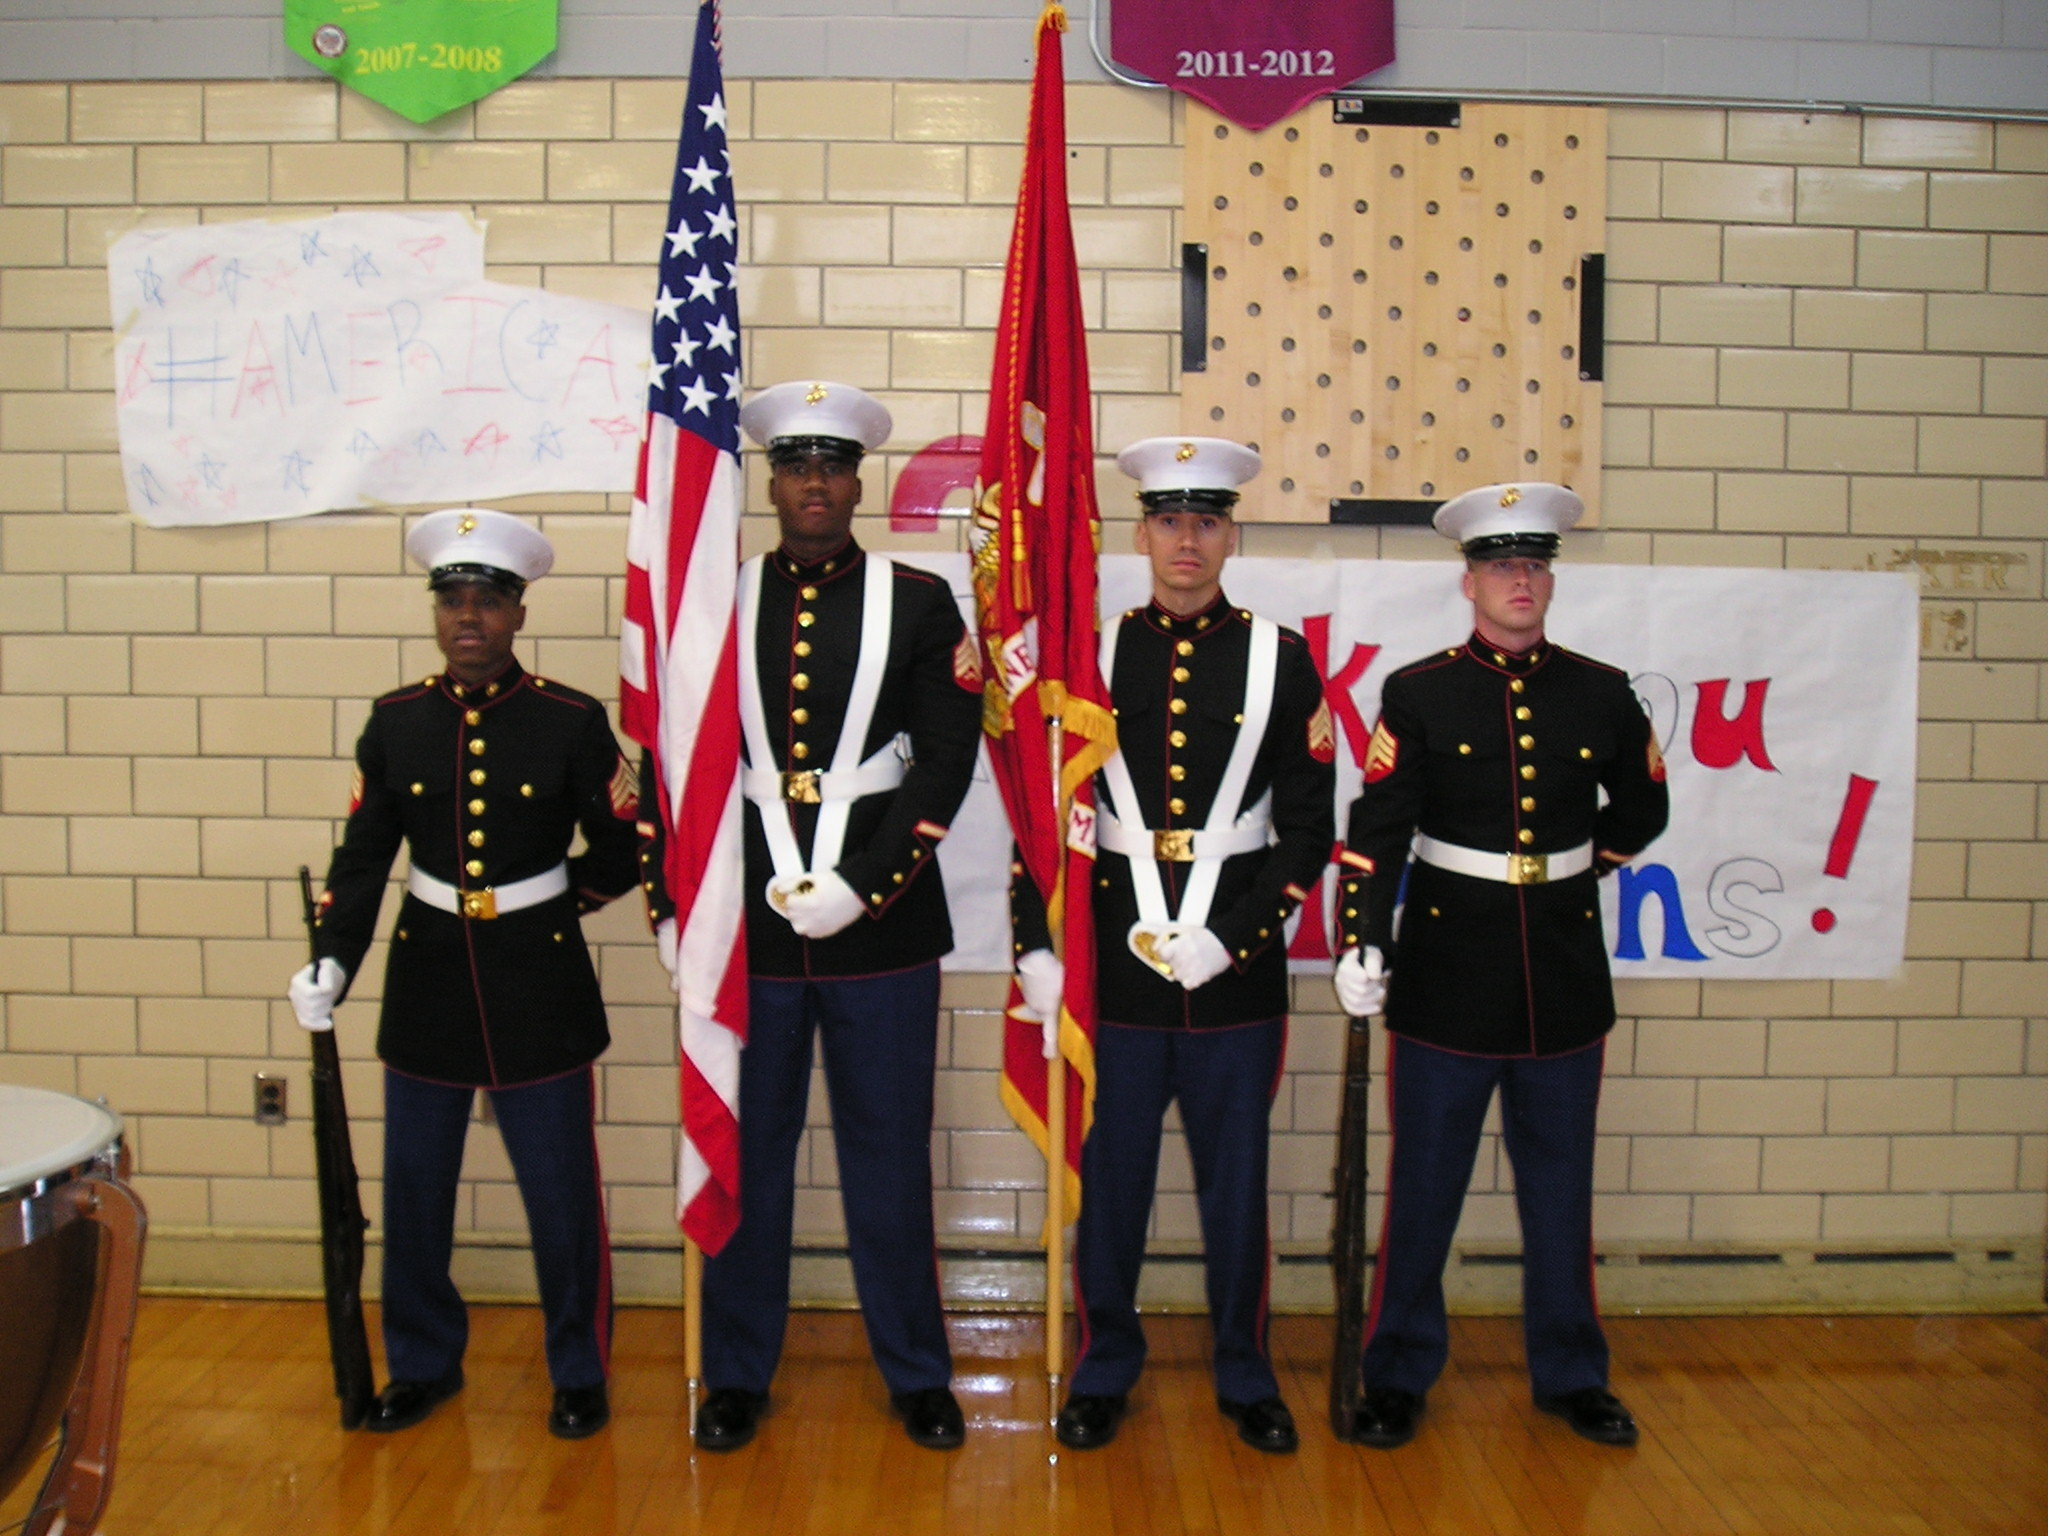 b7d0eec4aa5224d74f99_Marine_Color_Guard.JPG